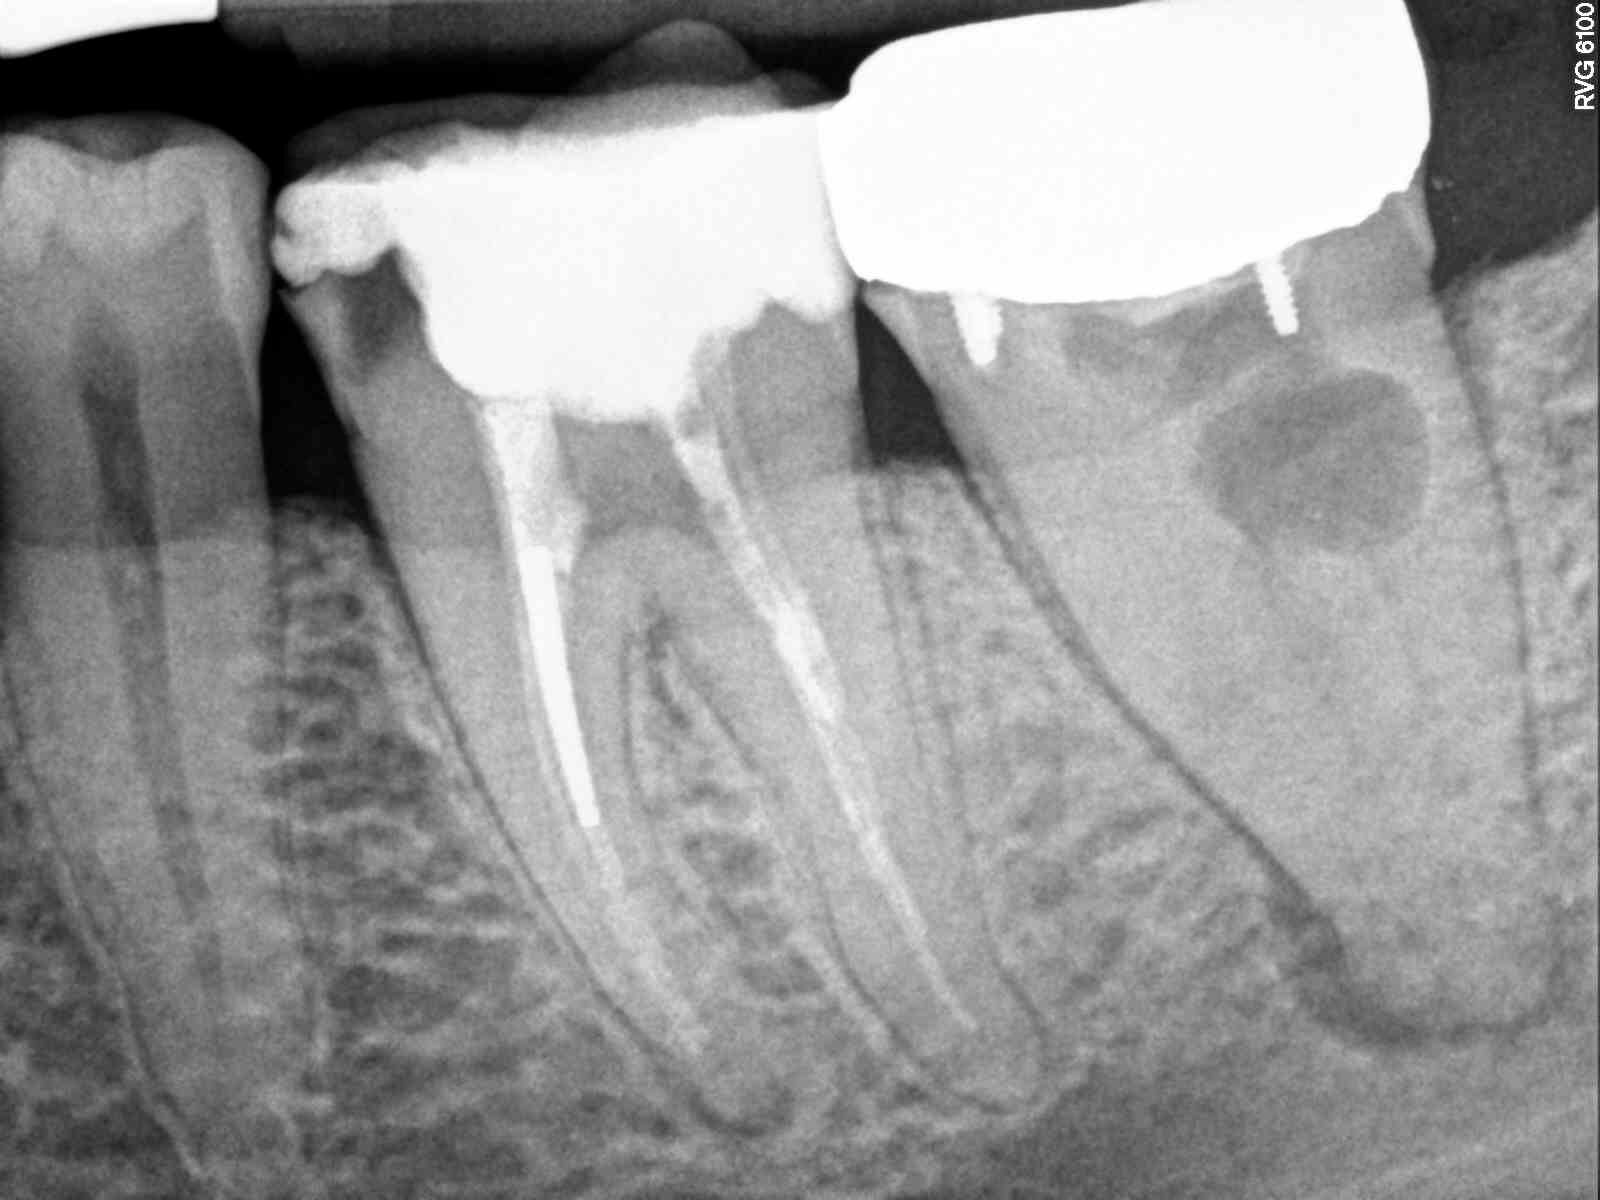 Preserving teeth, pre-operative condition